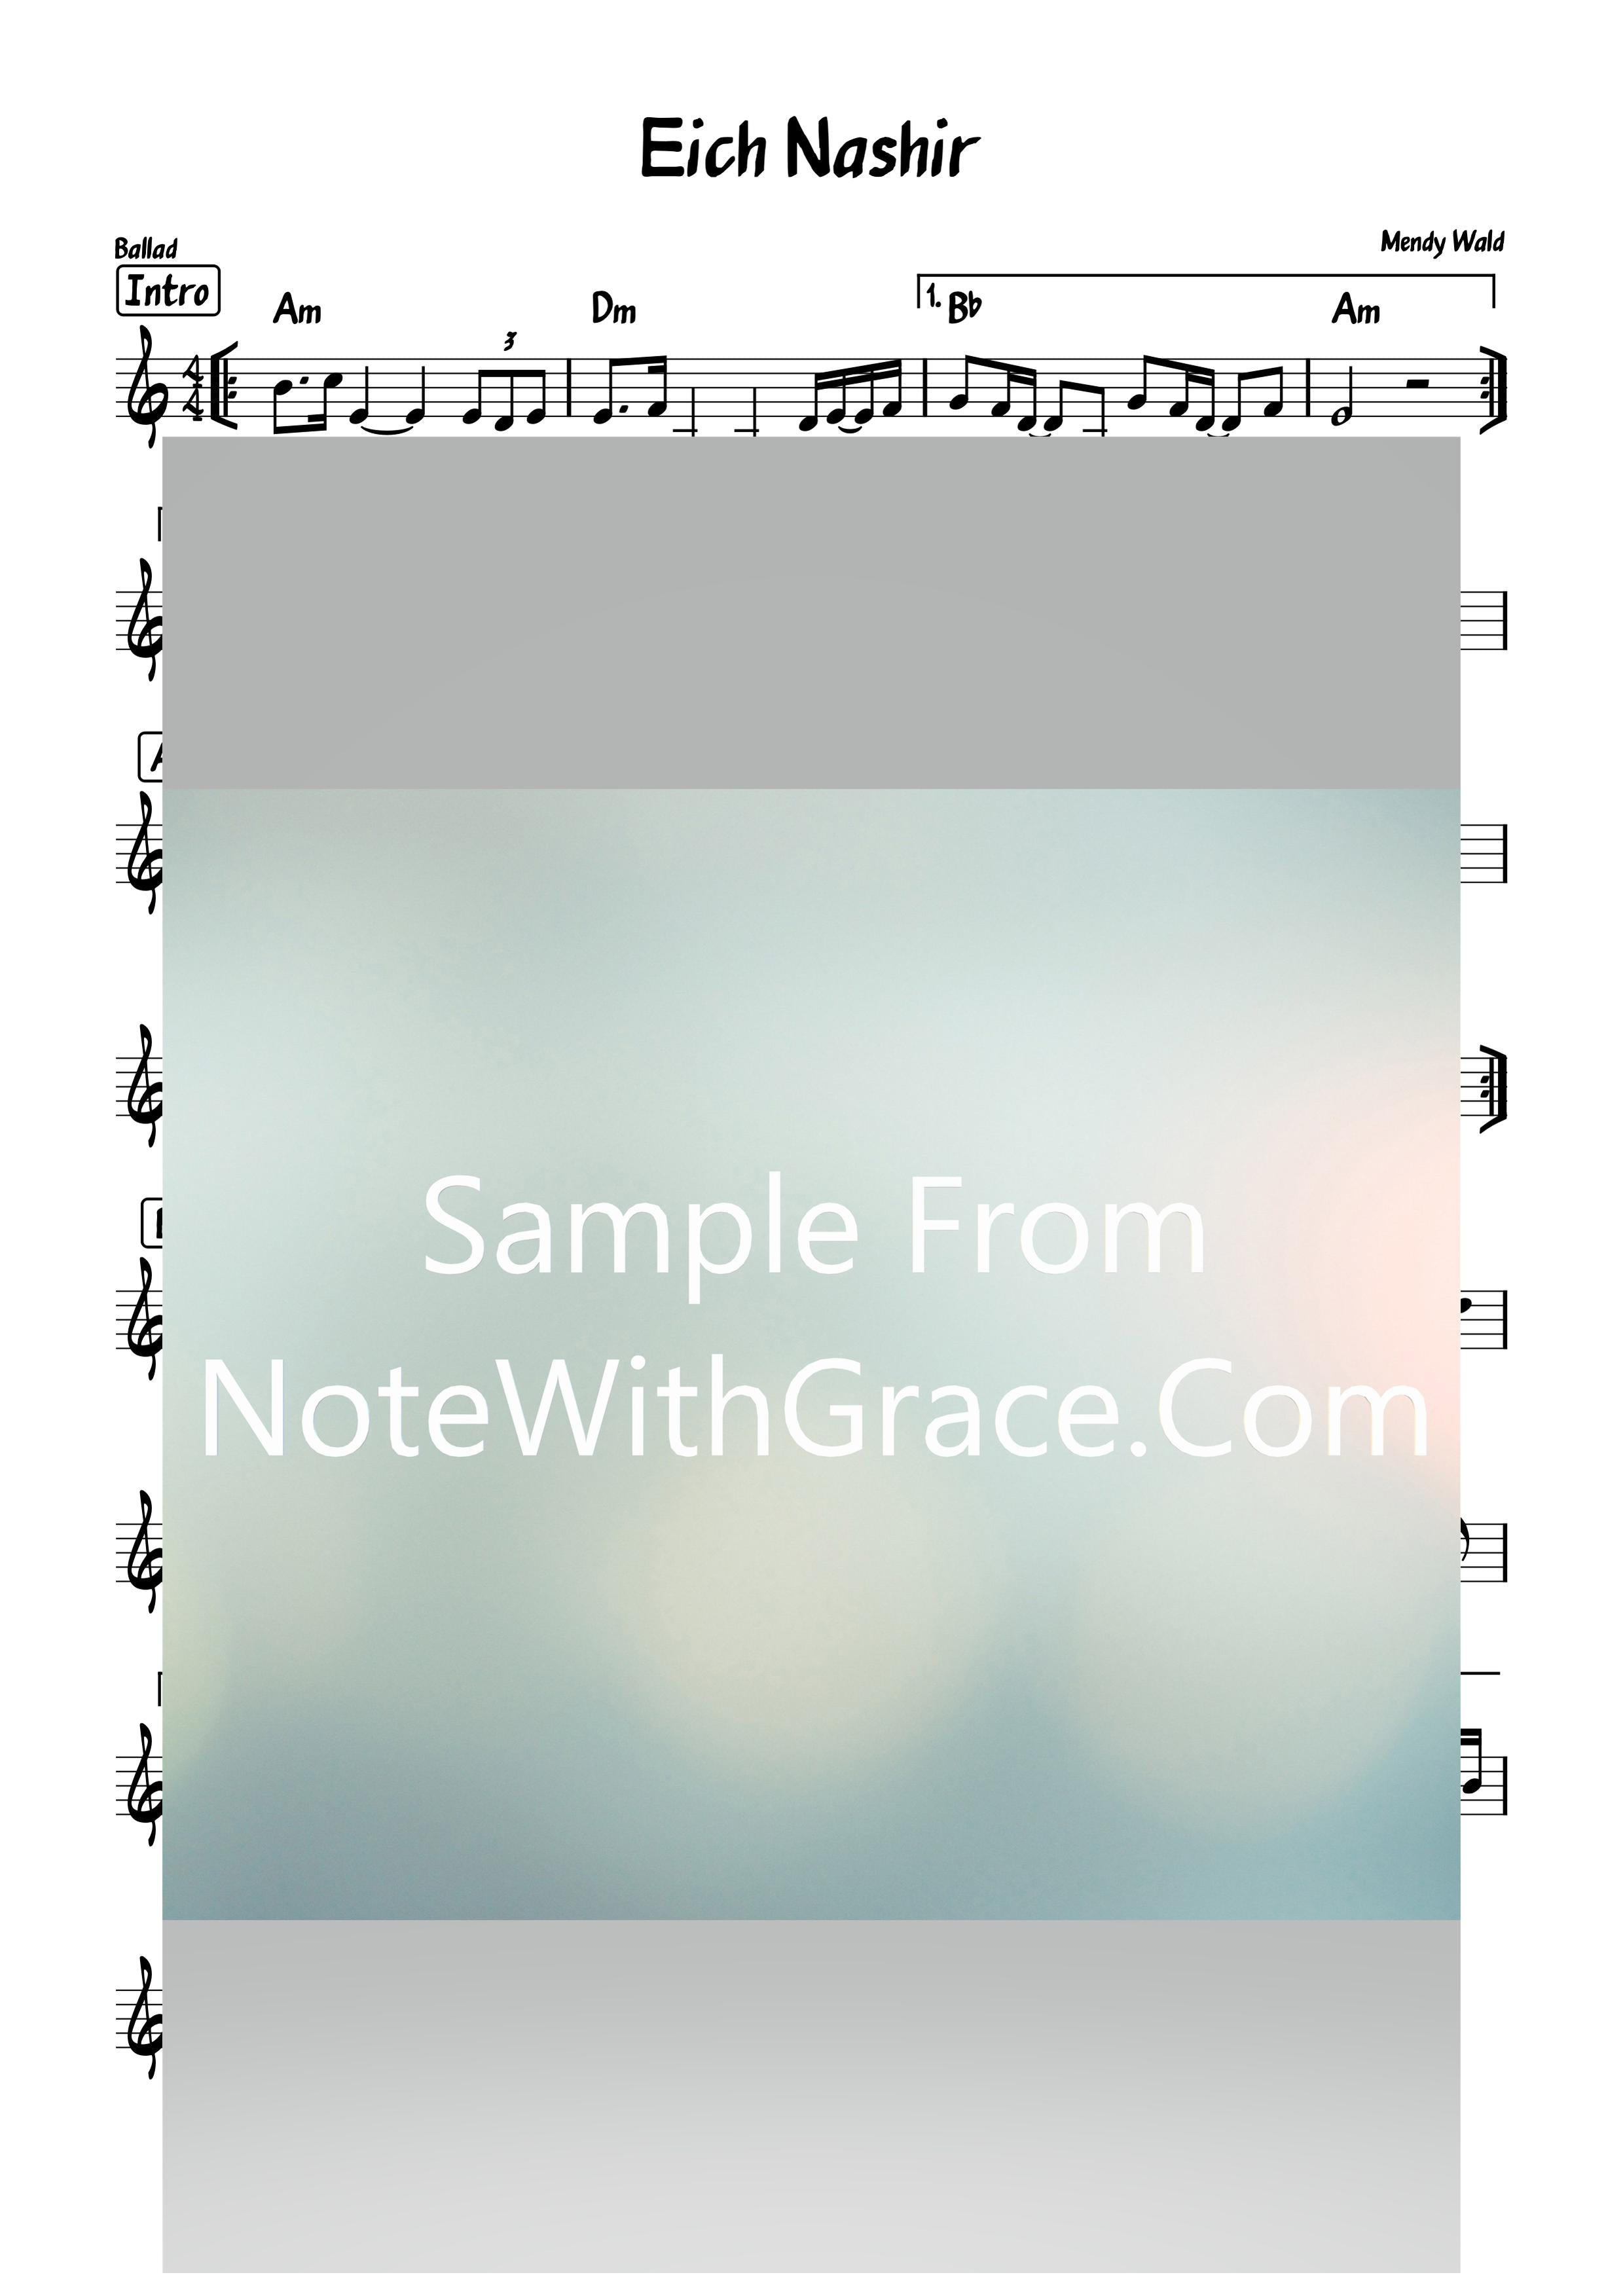 Eich Nashir - איך נשיר Lead Sheet (Mendy Wald/Yitzy Bald) Album: Sameach 2010-Sheet music-NoteWithGrace.com